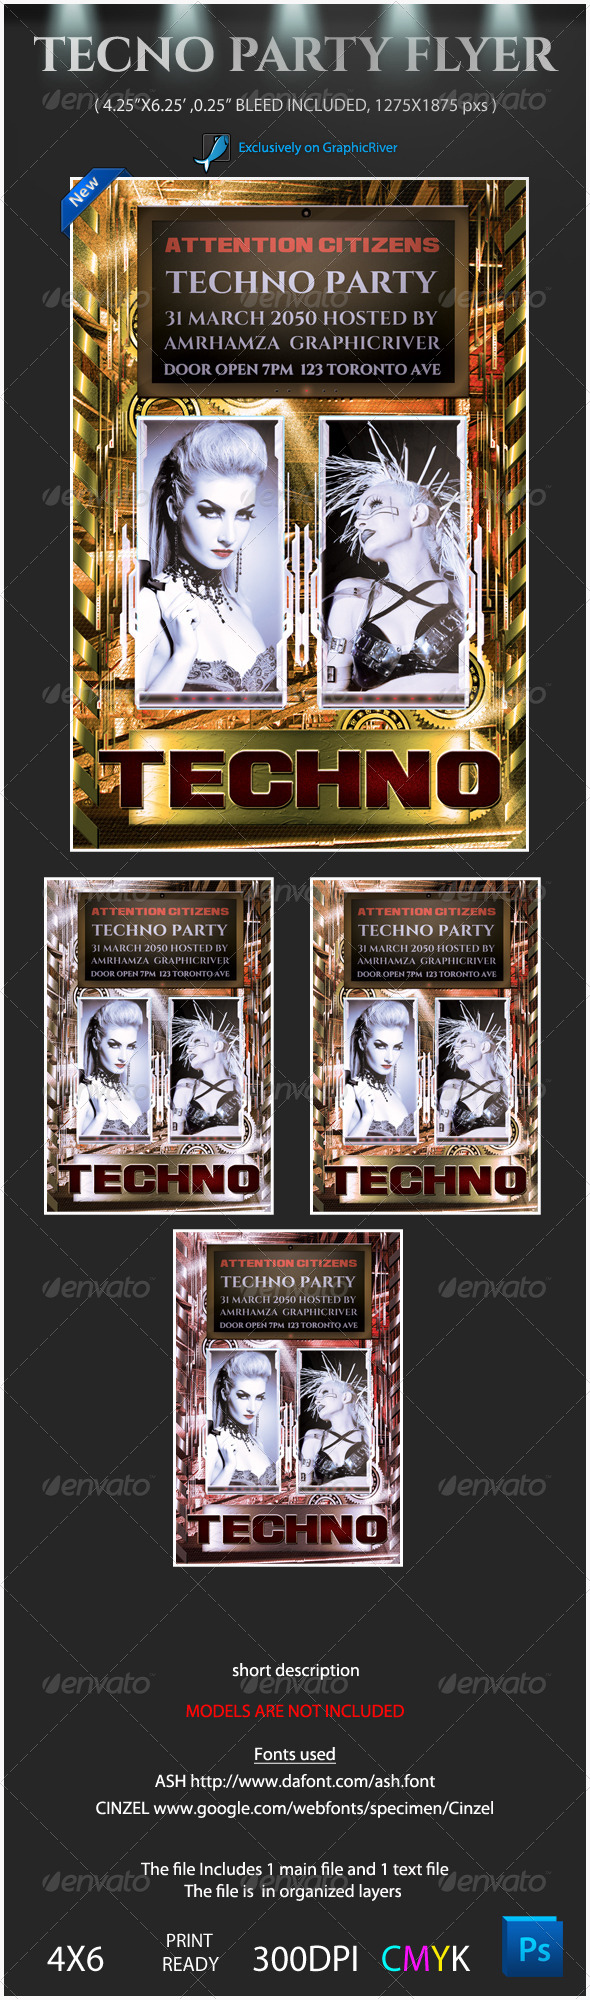 GraphicRiver Techno Party Flyer Template 4008072